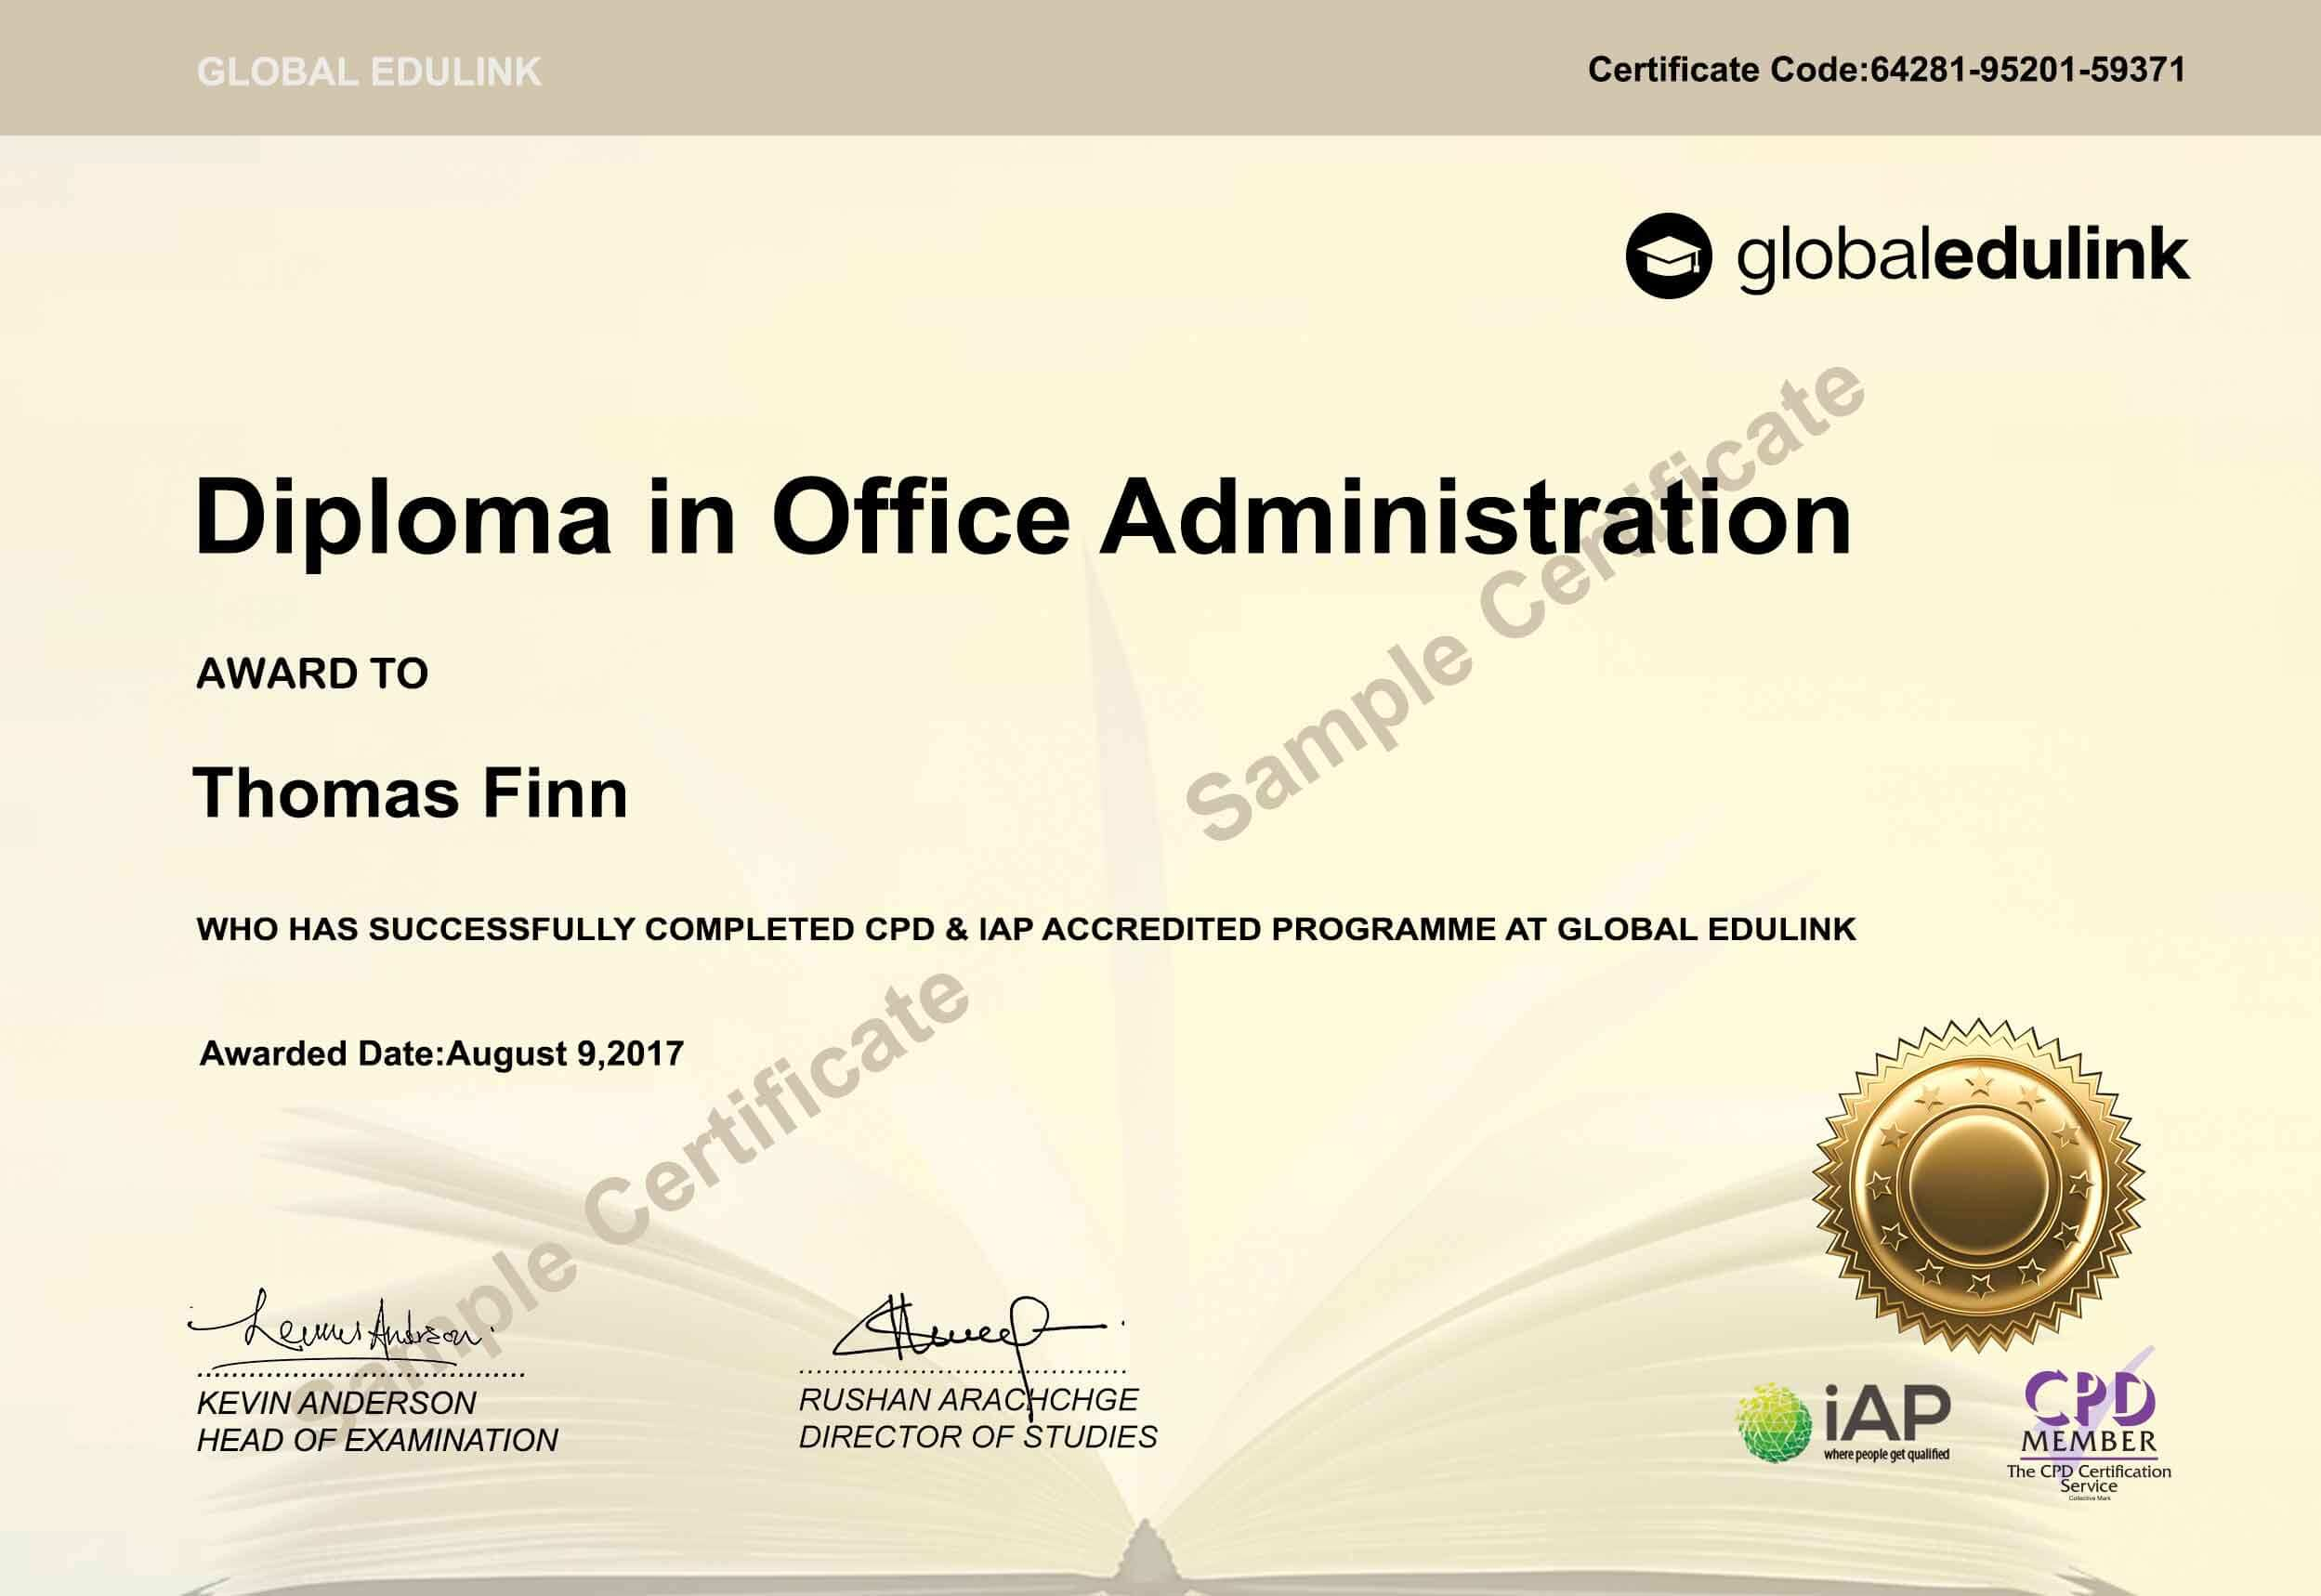 Certificate And Accredited